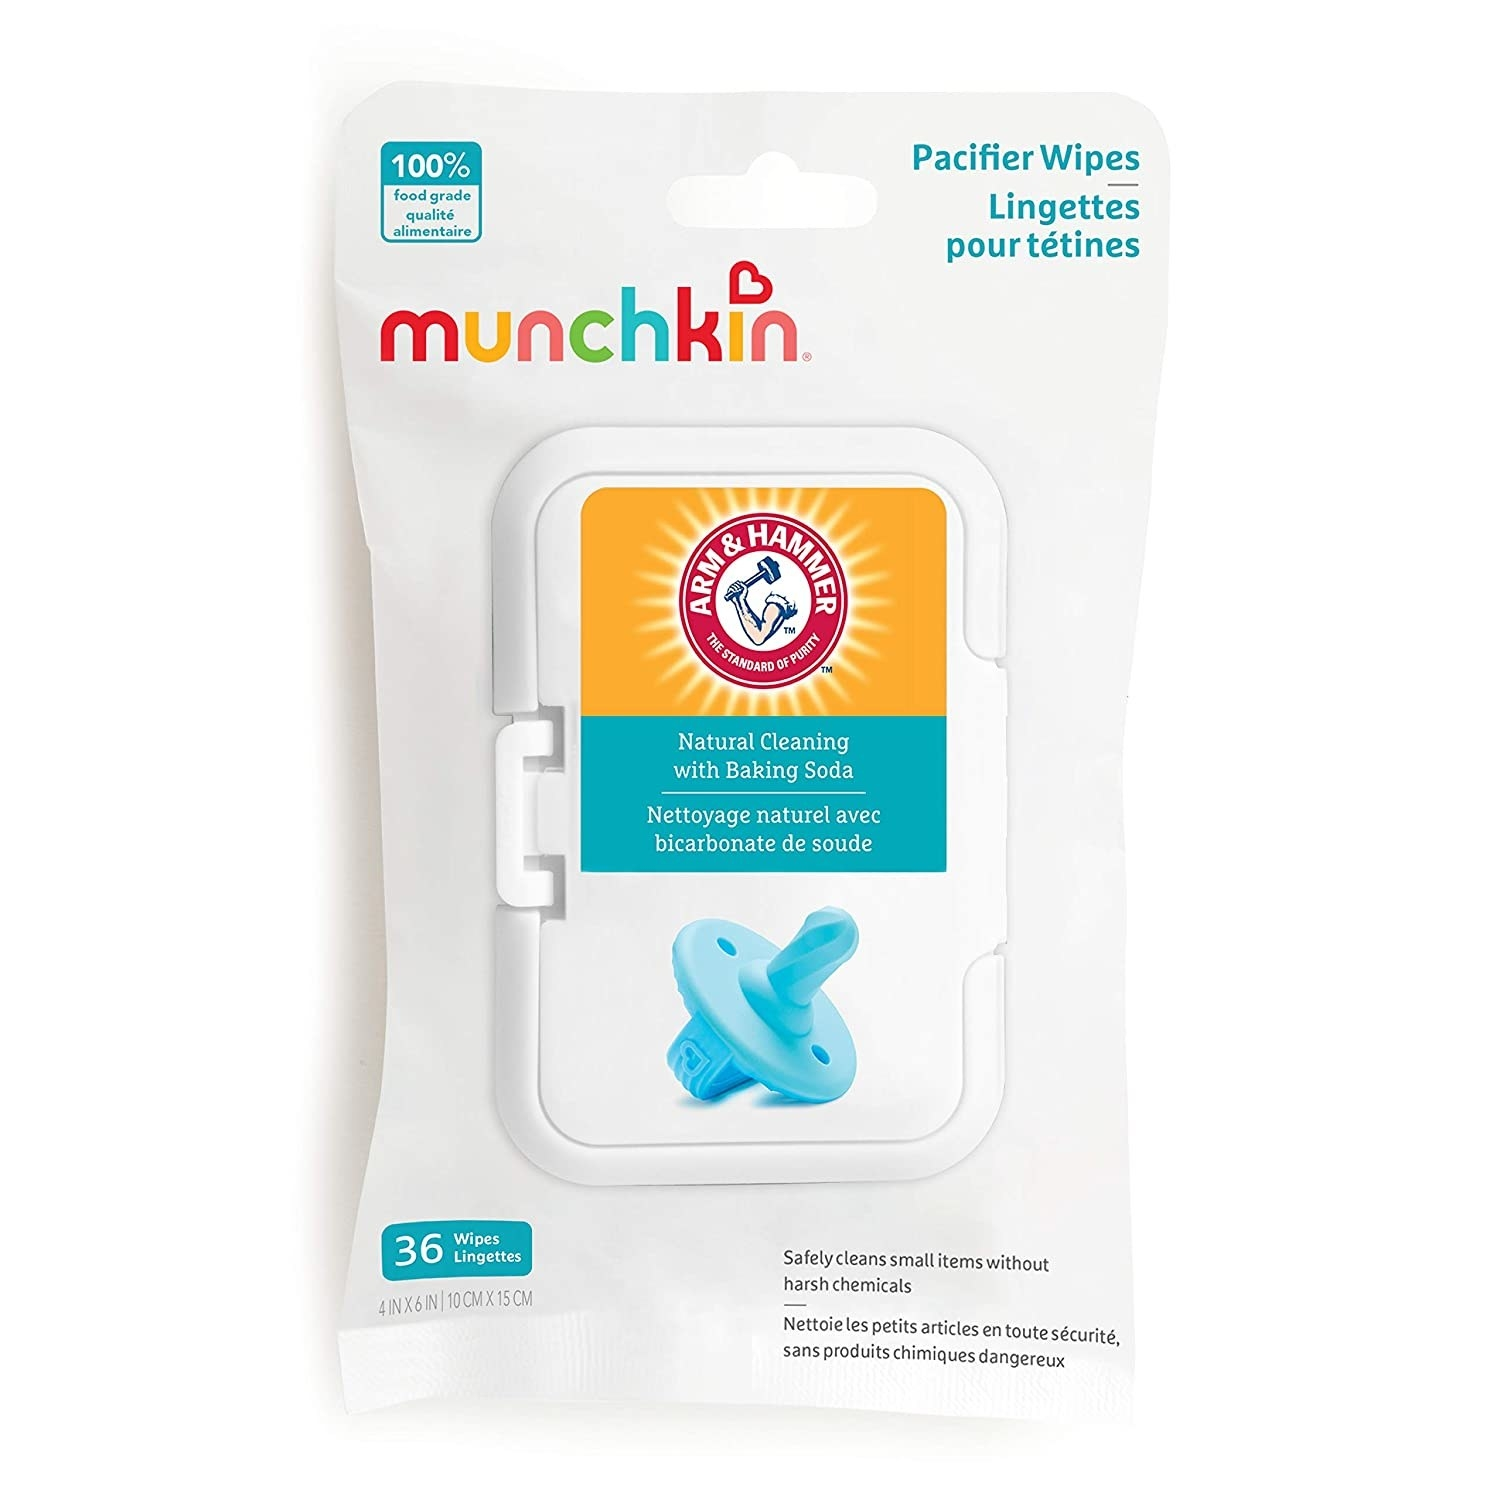 A pack of pacifier wipes